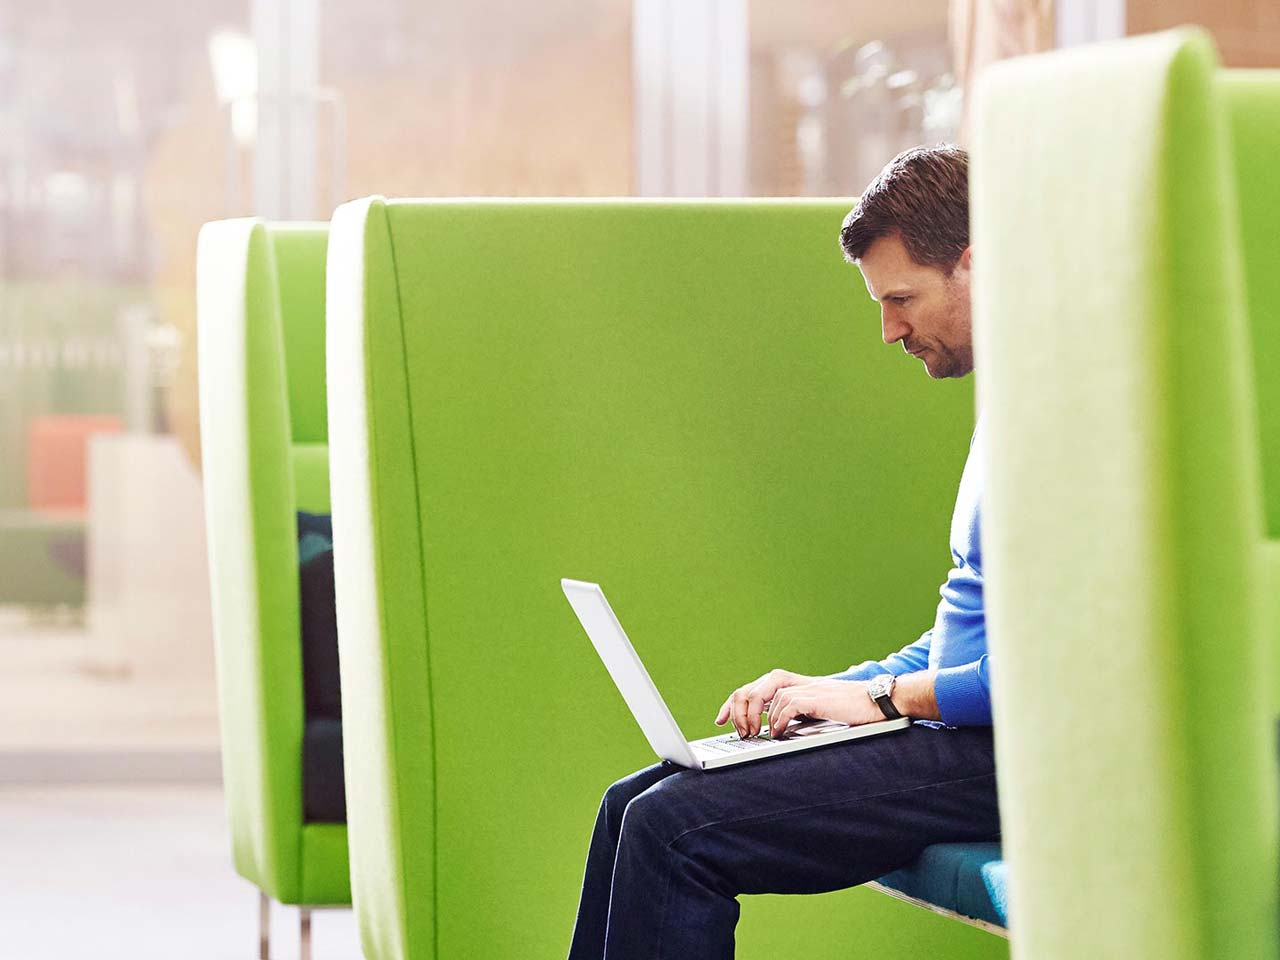 Man working on  laptop while sitting on a green chair